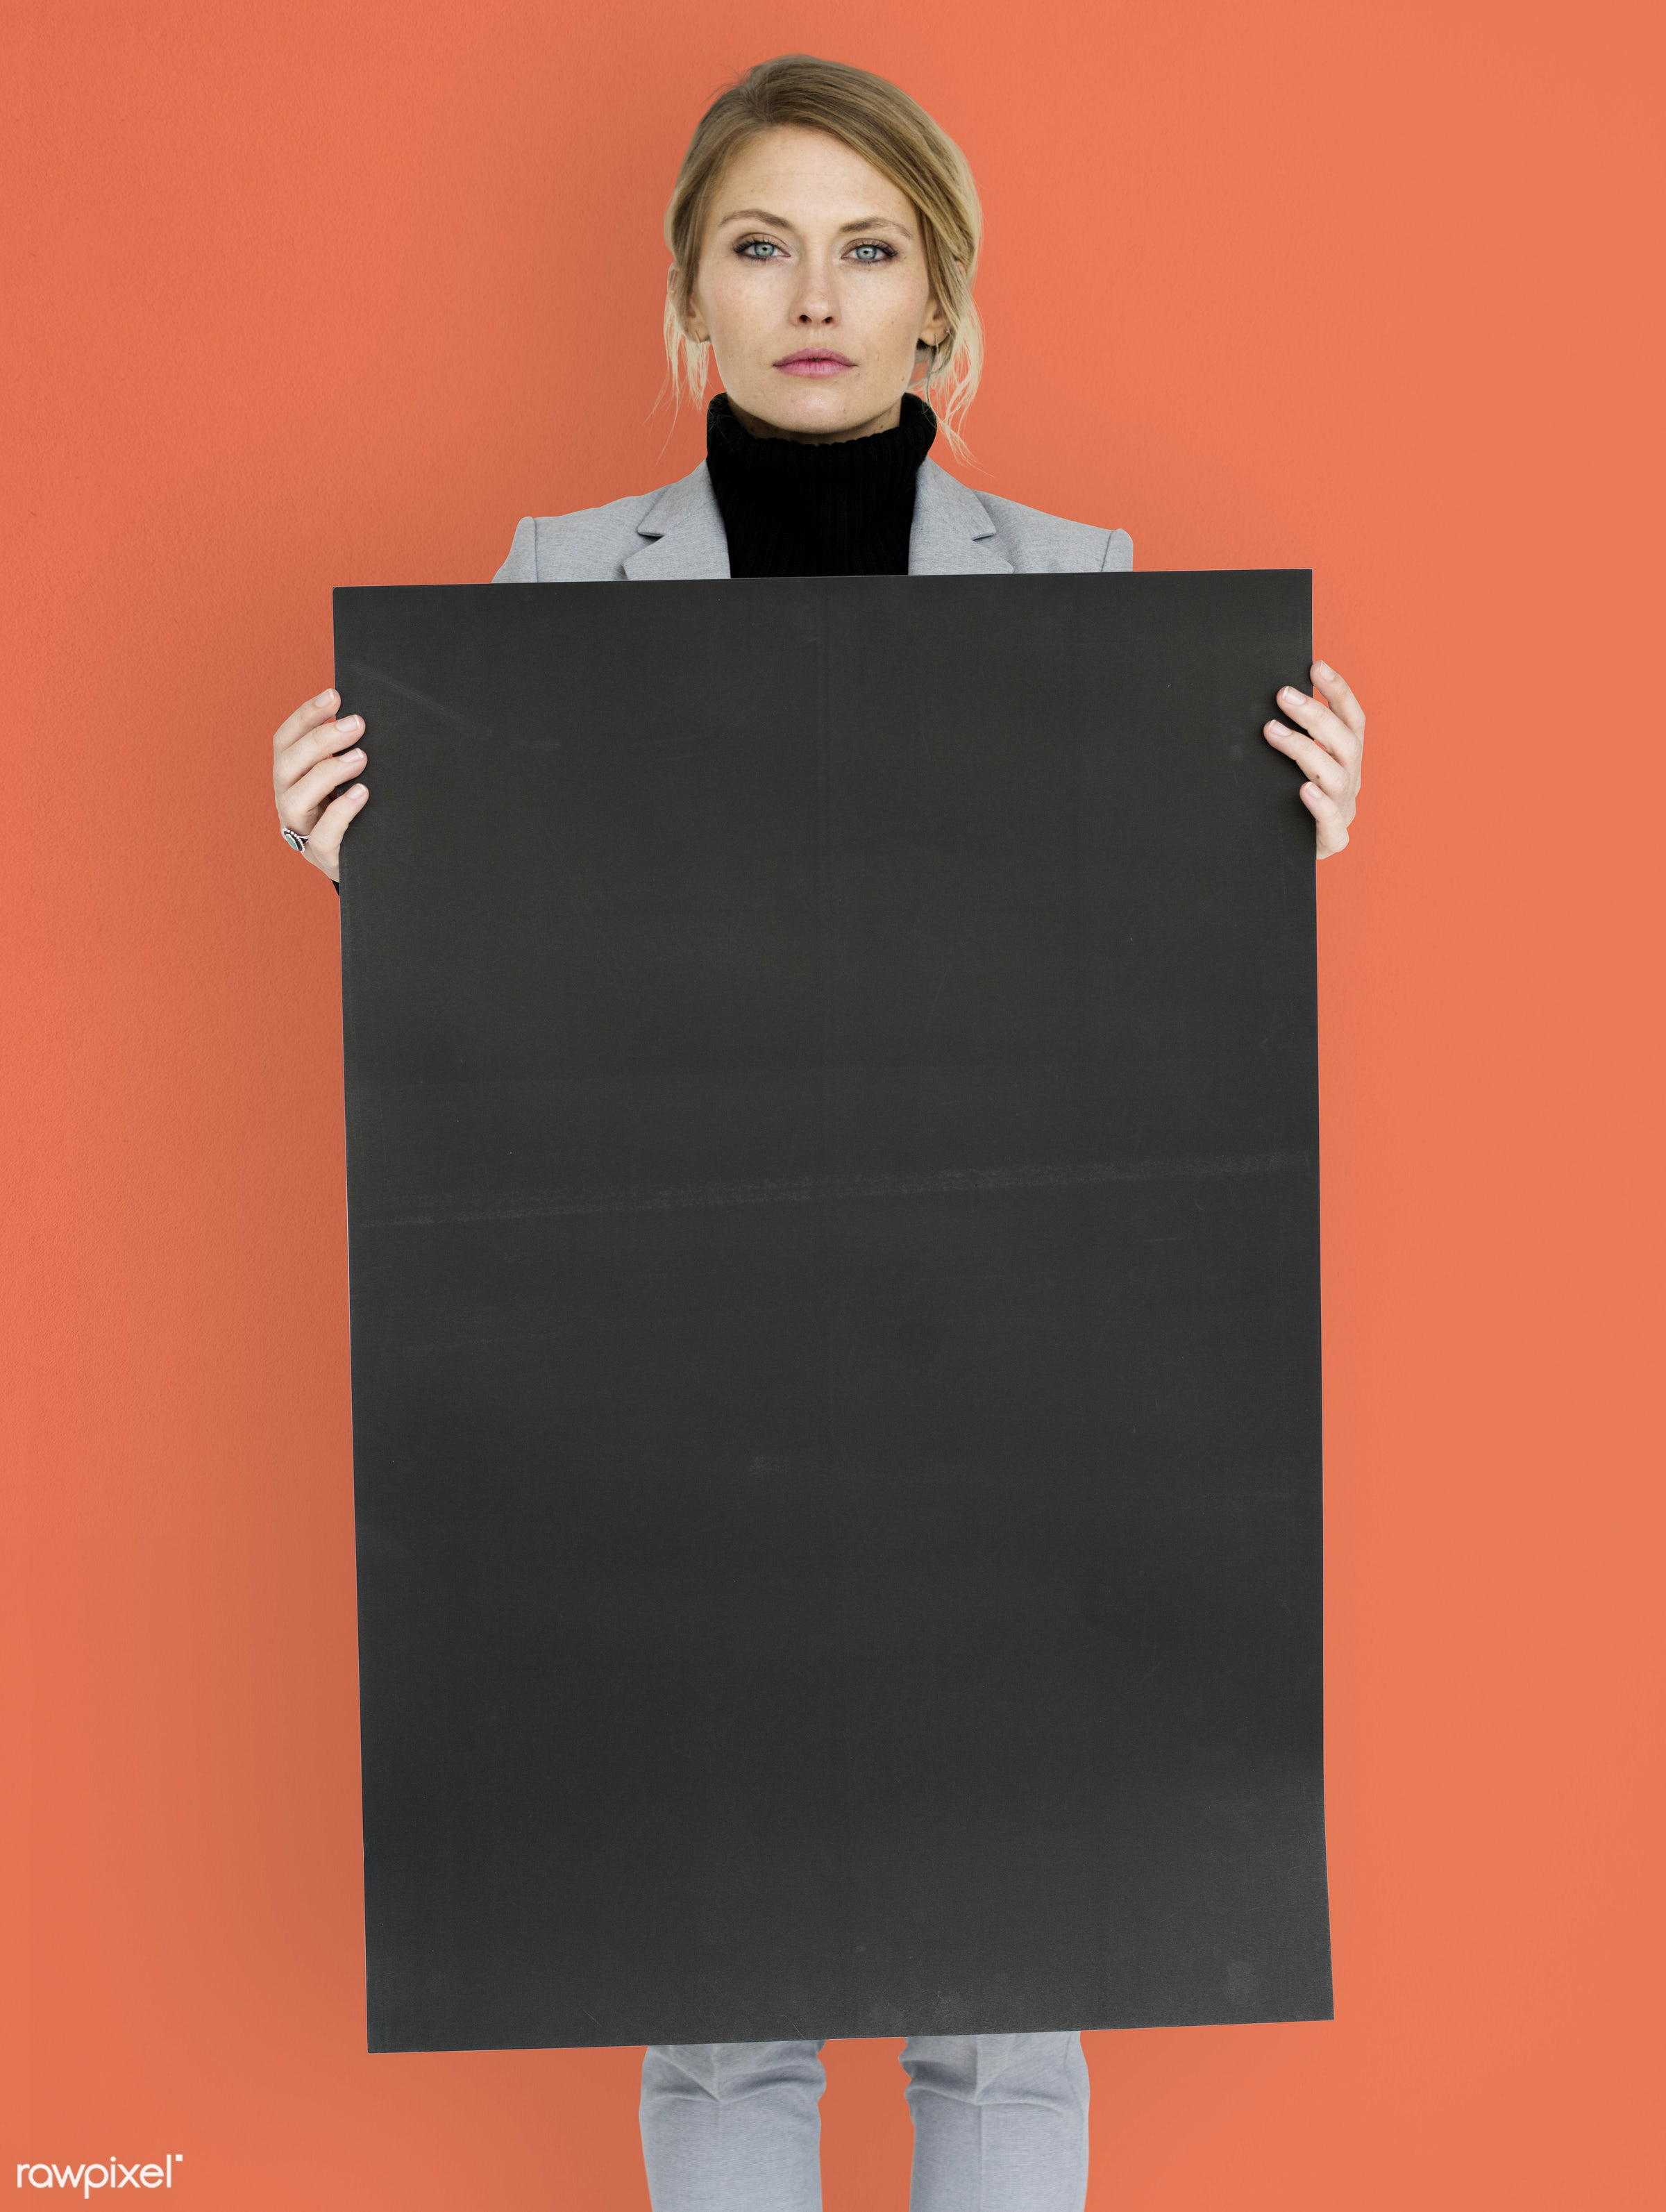 studio, expression, person, holding, courage, people, placard, woman, orange, isolated, businesswoman, portrait, charming,...